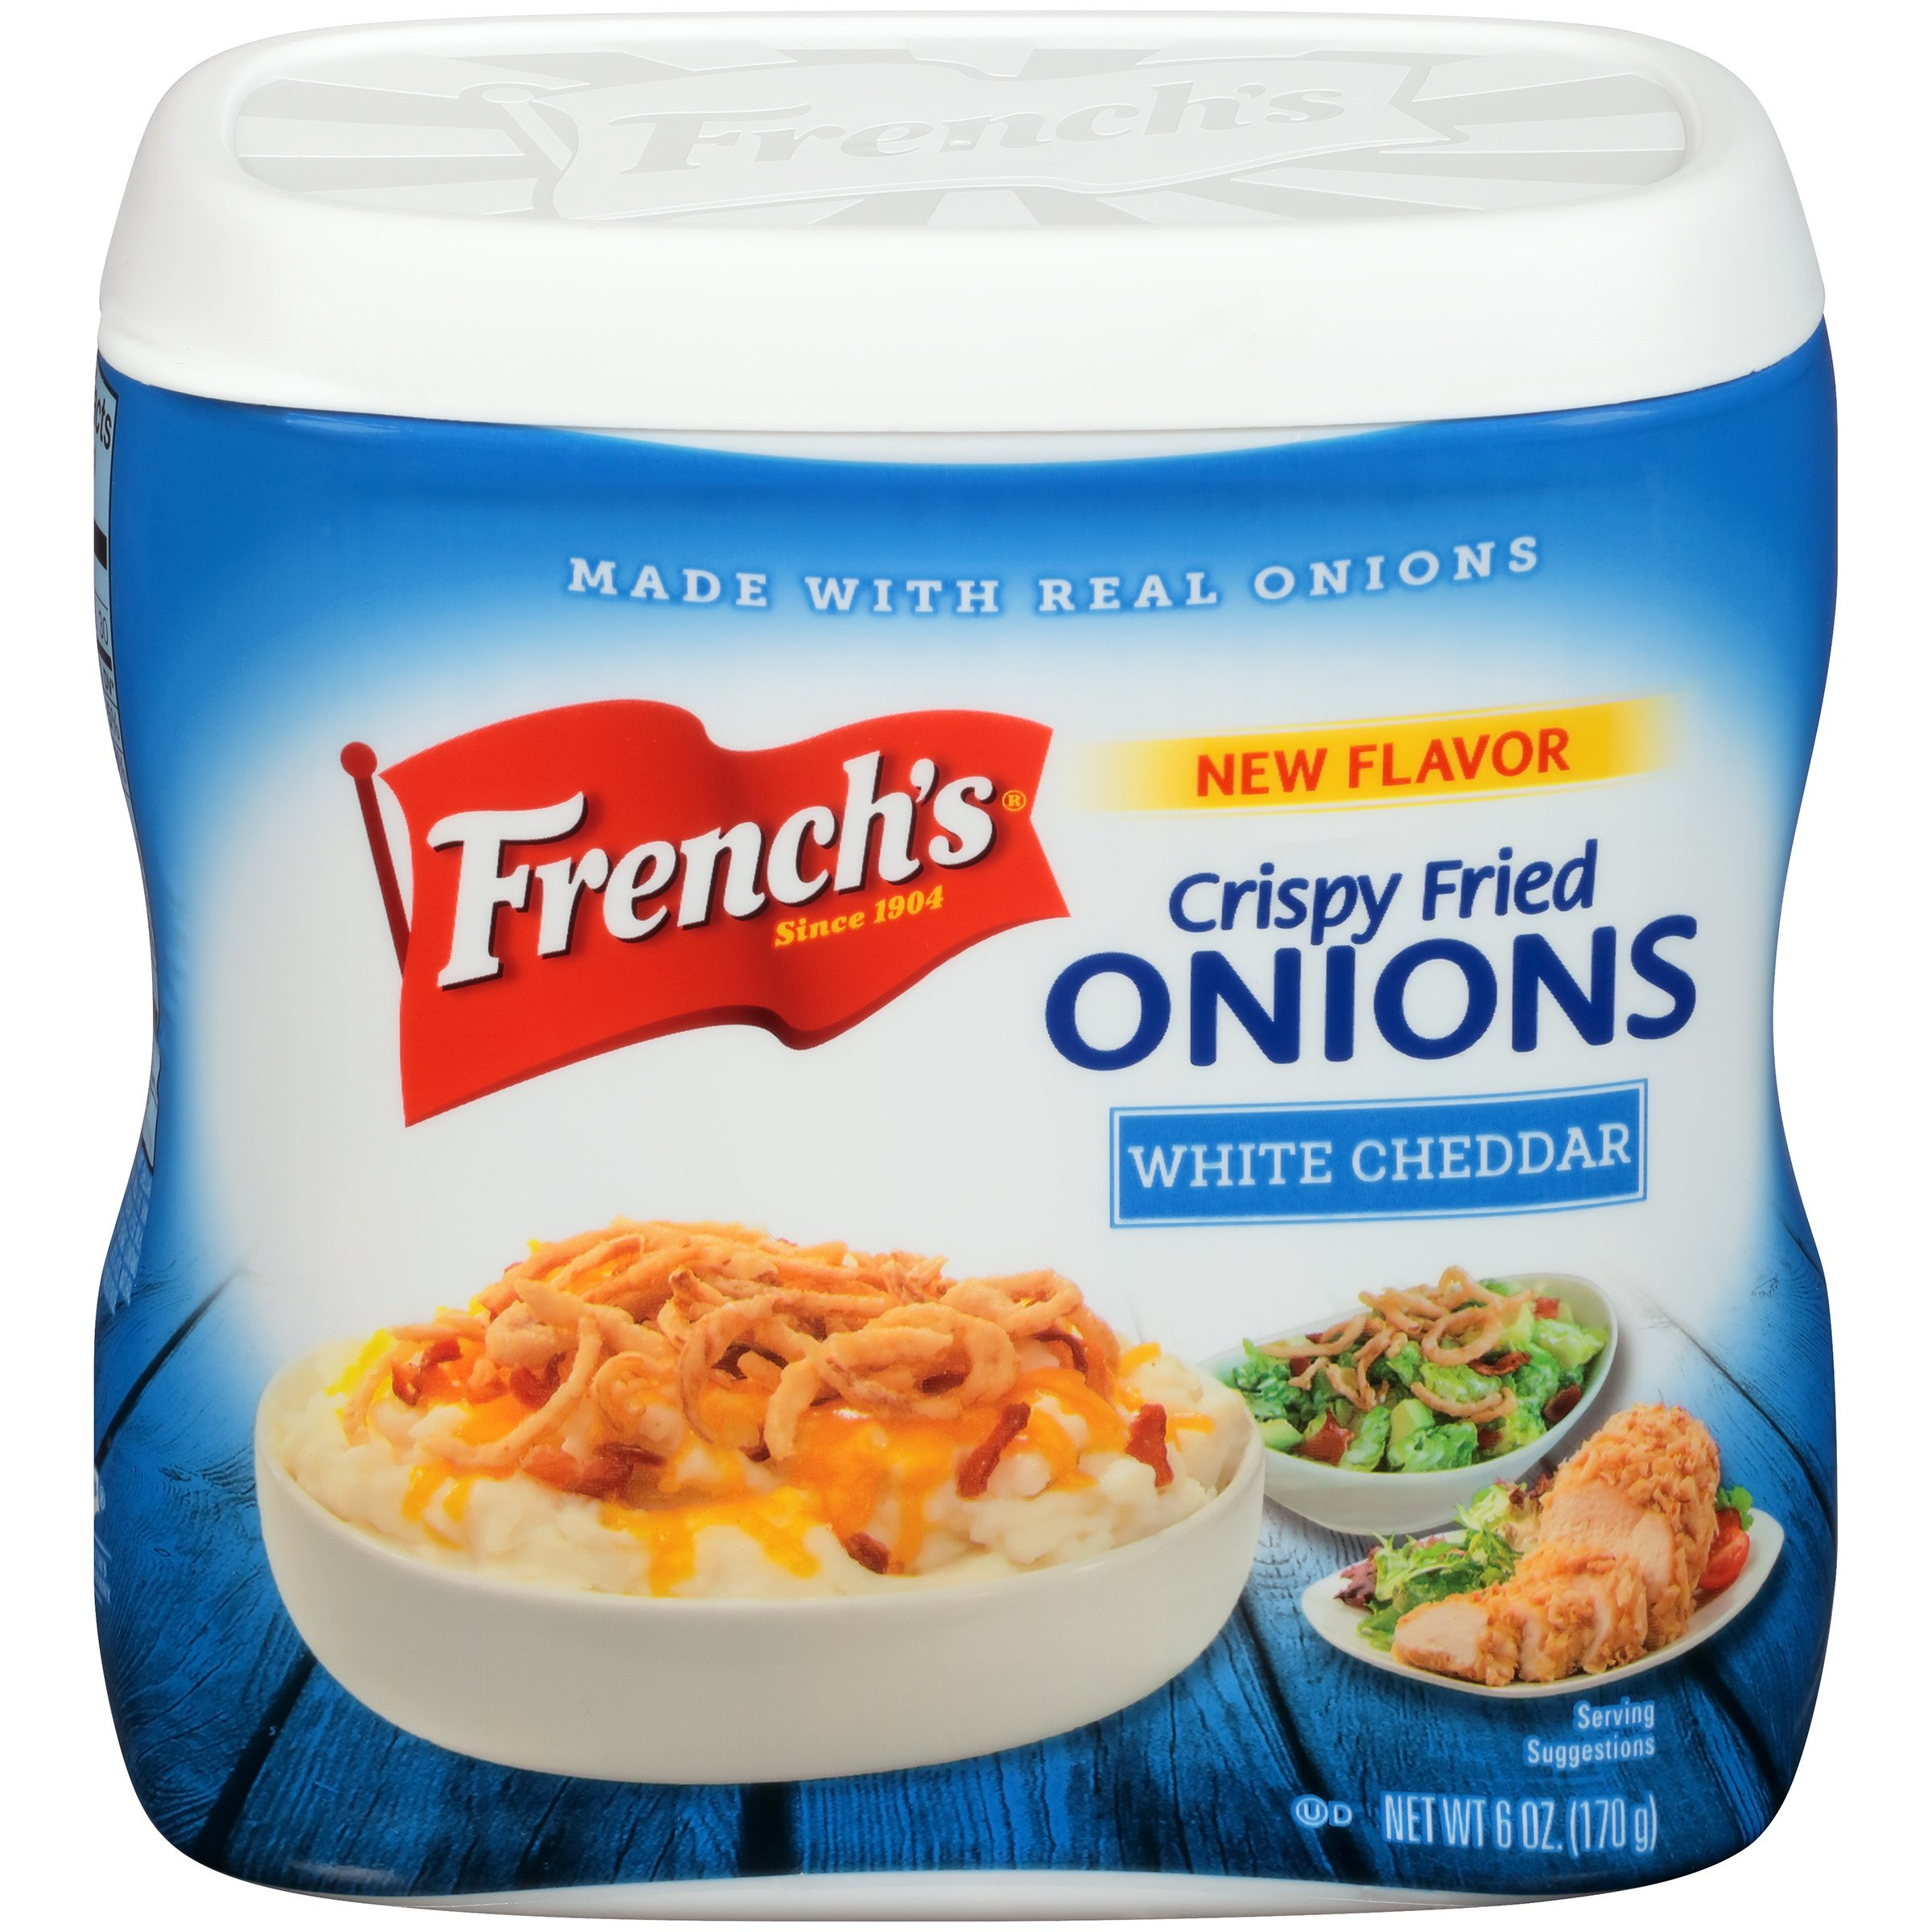 French's White Cheddar Crispy Fried Onions, 6 oz, White Cheddar-Flavored Onion Topping by French's